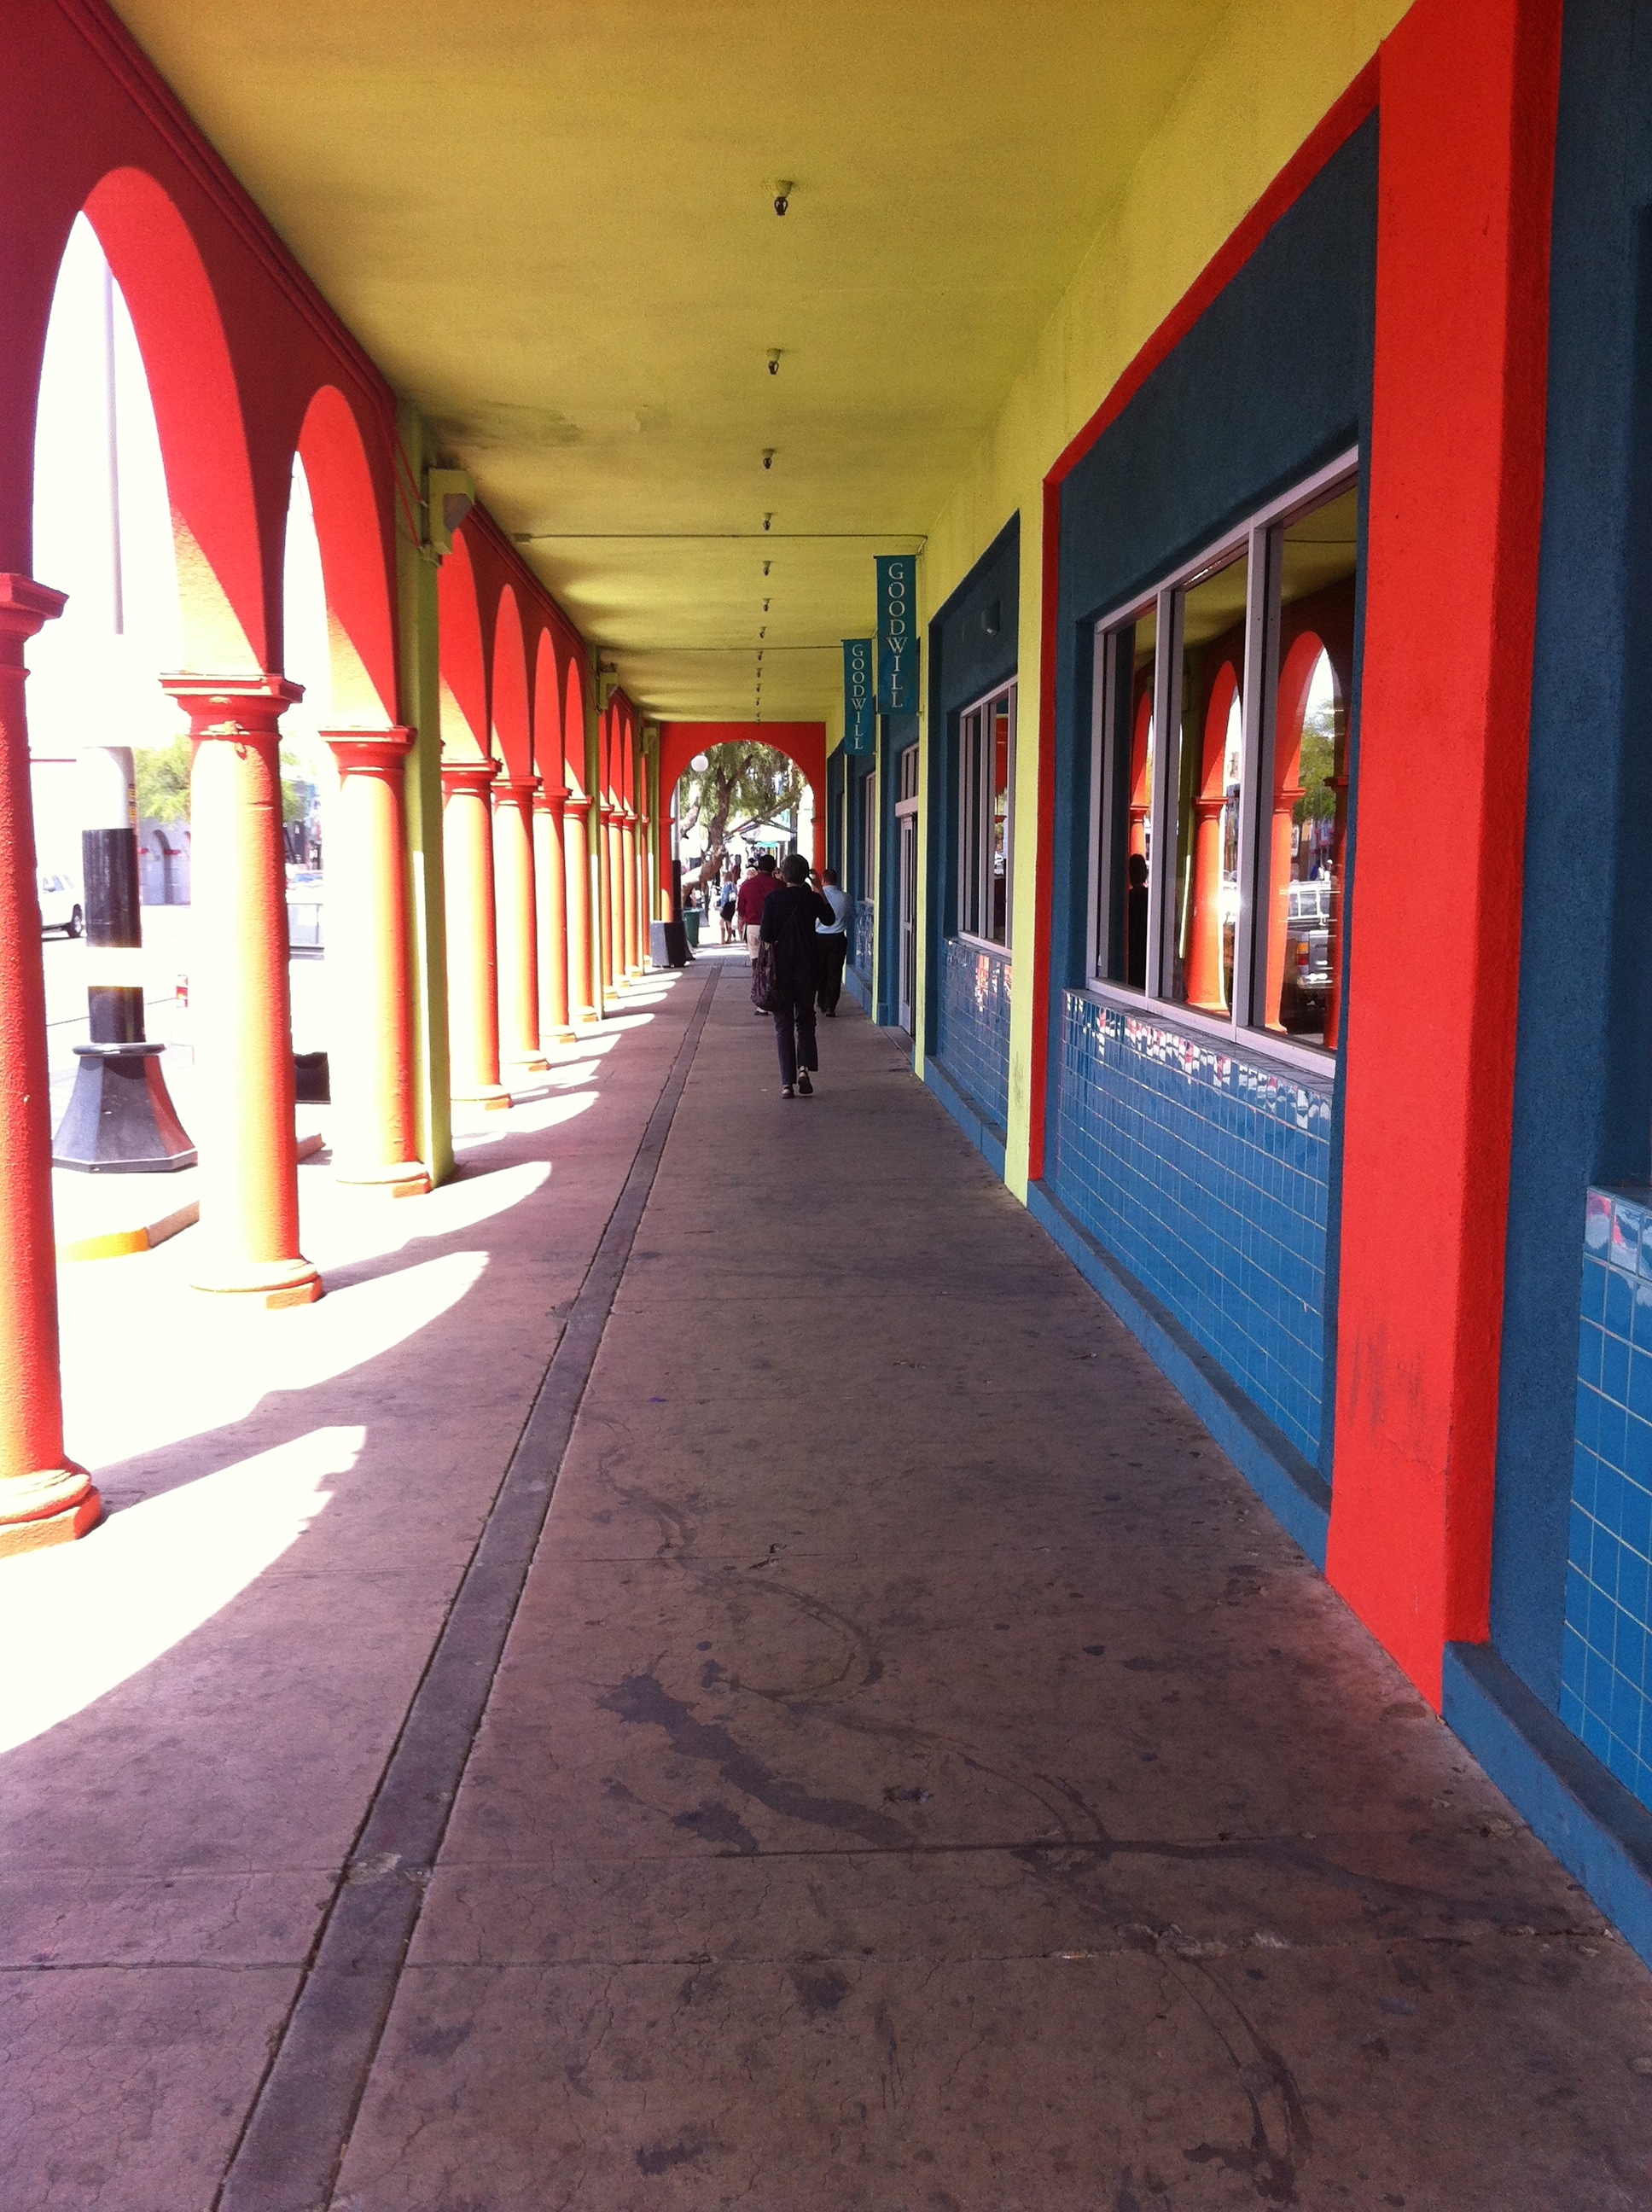 Perhaps the world's most colourful colonnade can be found attached to the Goodwill building.